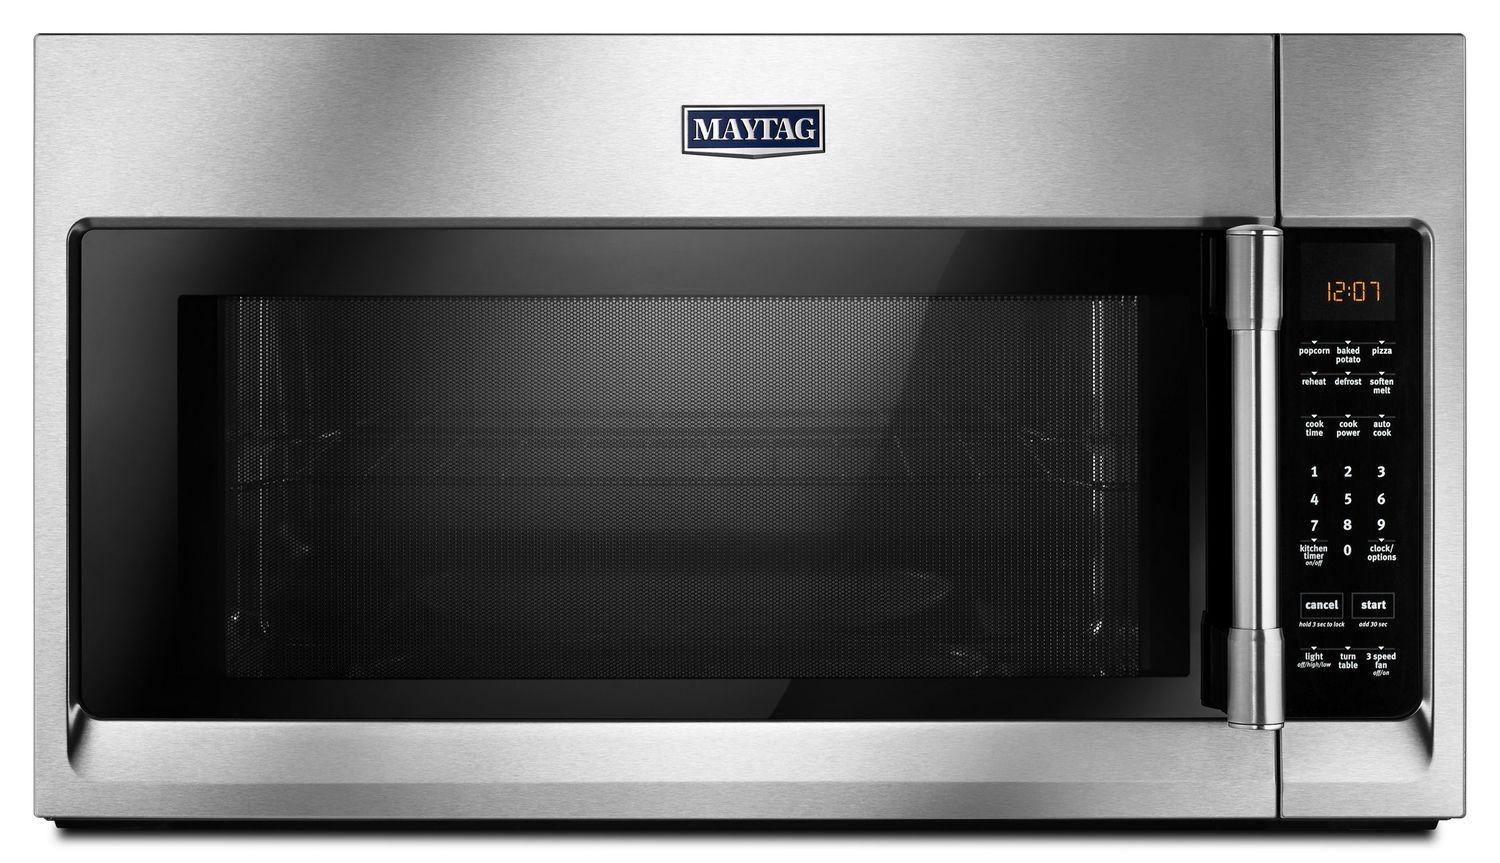 MaytagOver-The-Range Microwave With Interior Cooking Rack - 2.0 Cu. Ft. Fingerprint Resistant Stainless Steel